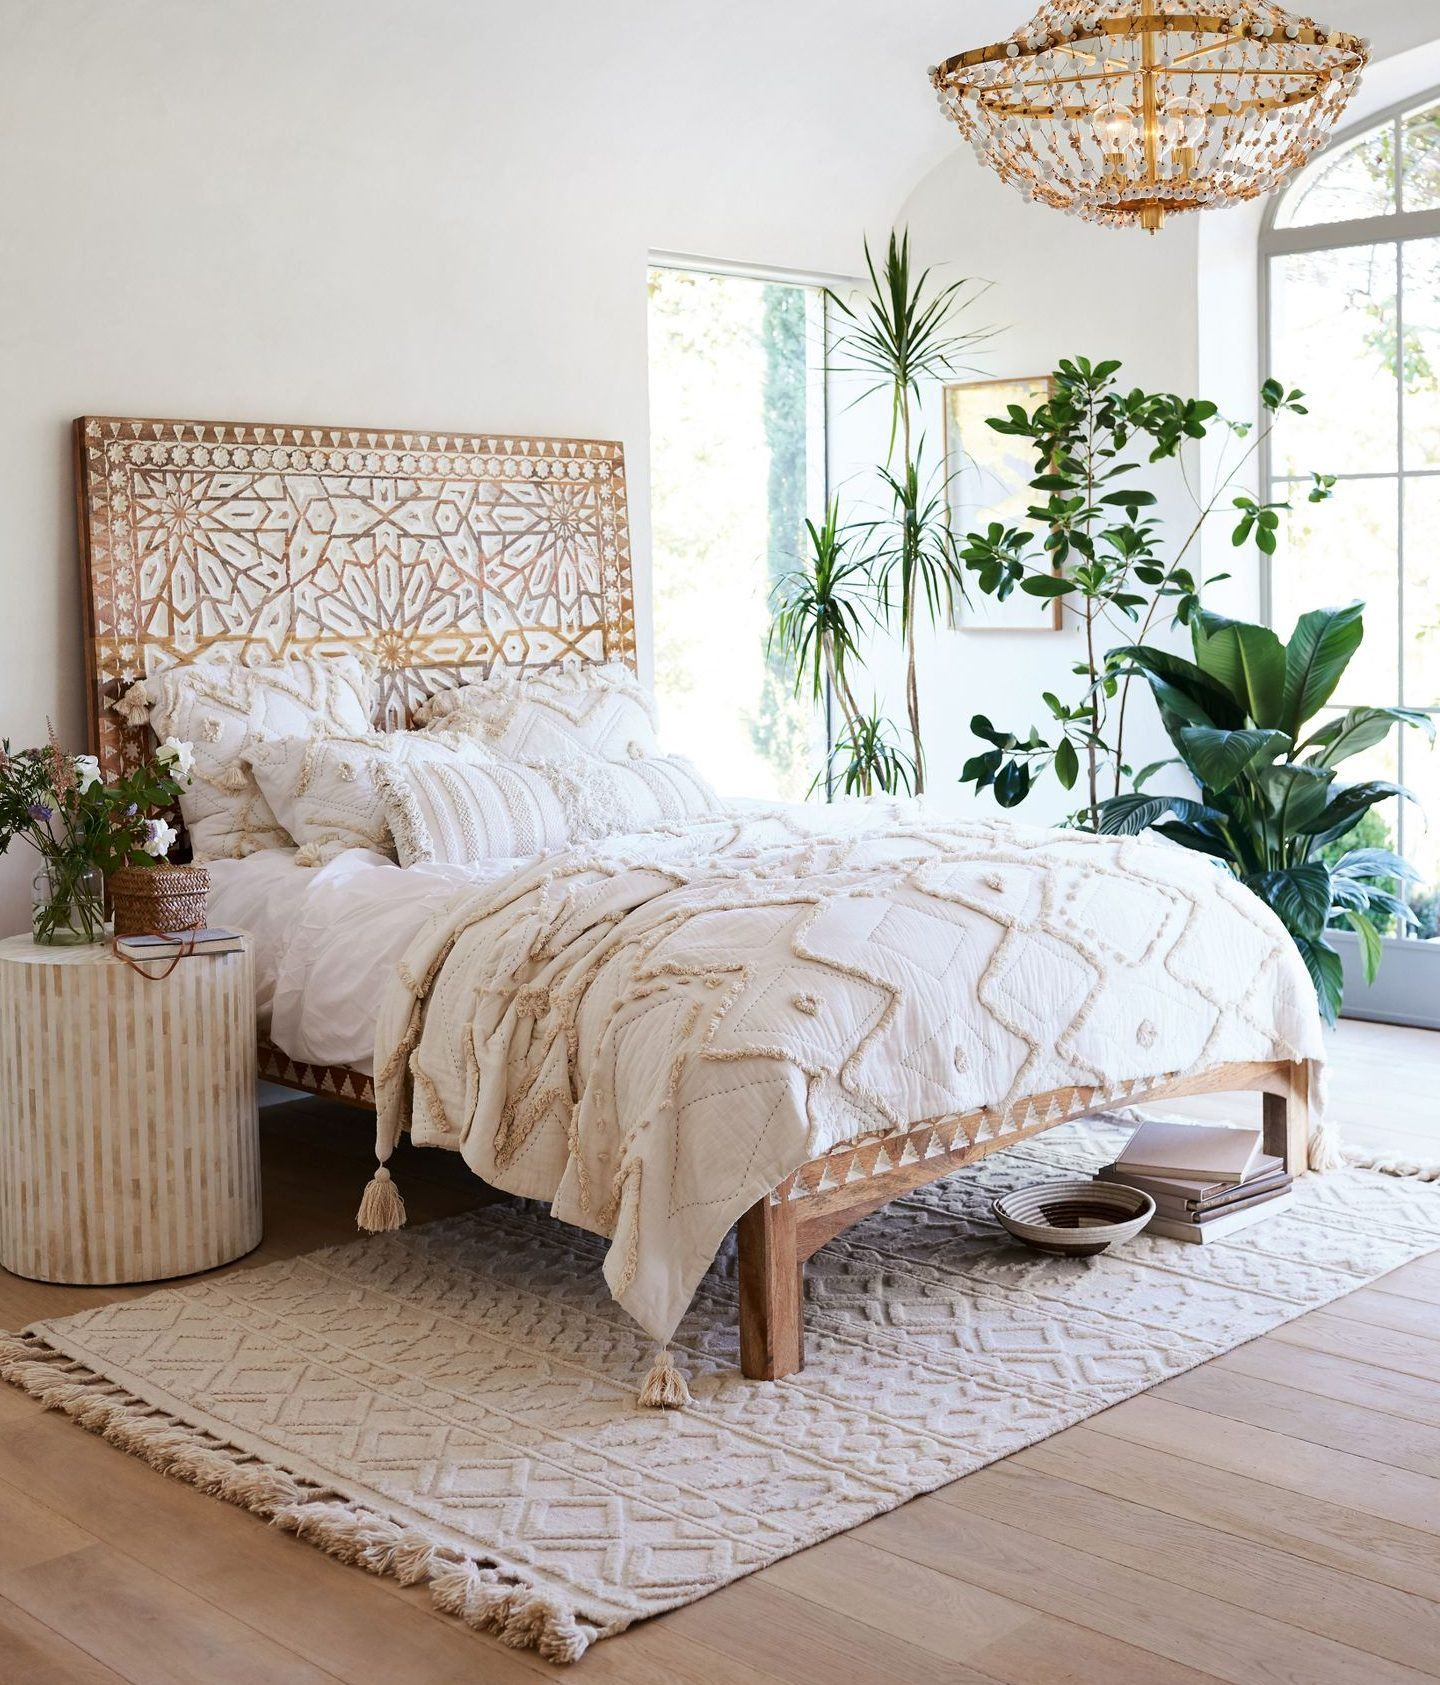 boho chic bedroom designs to enter diversity in the home